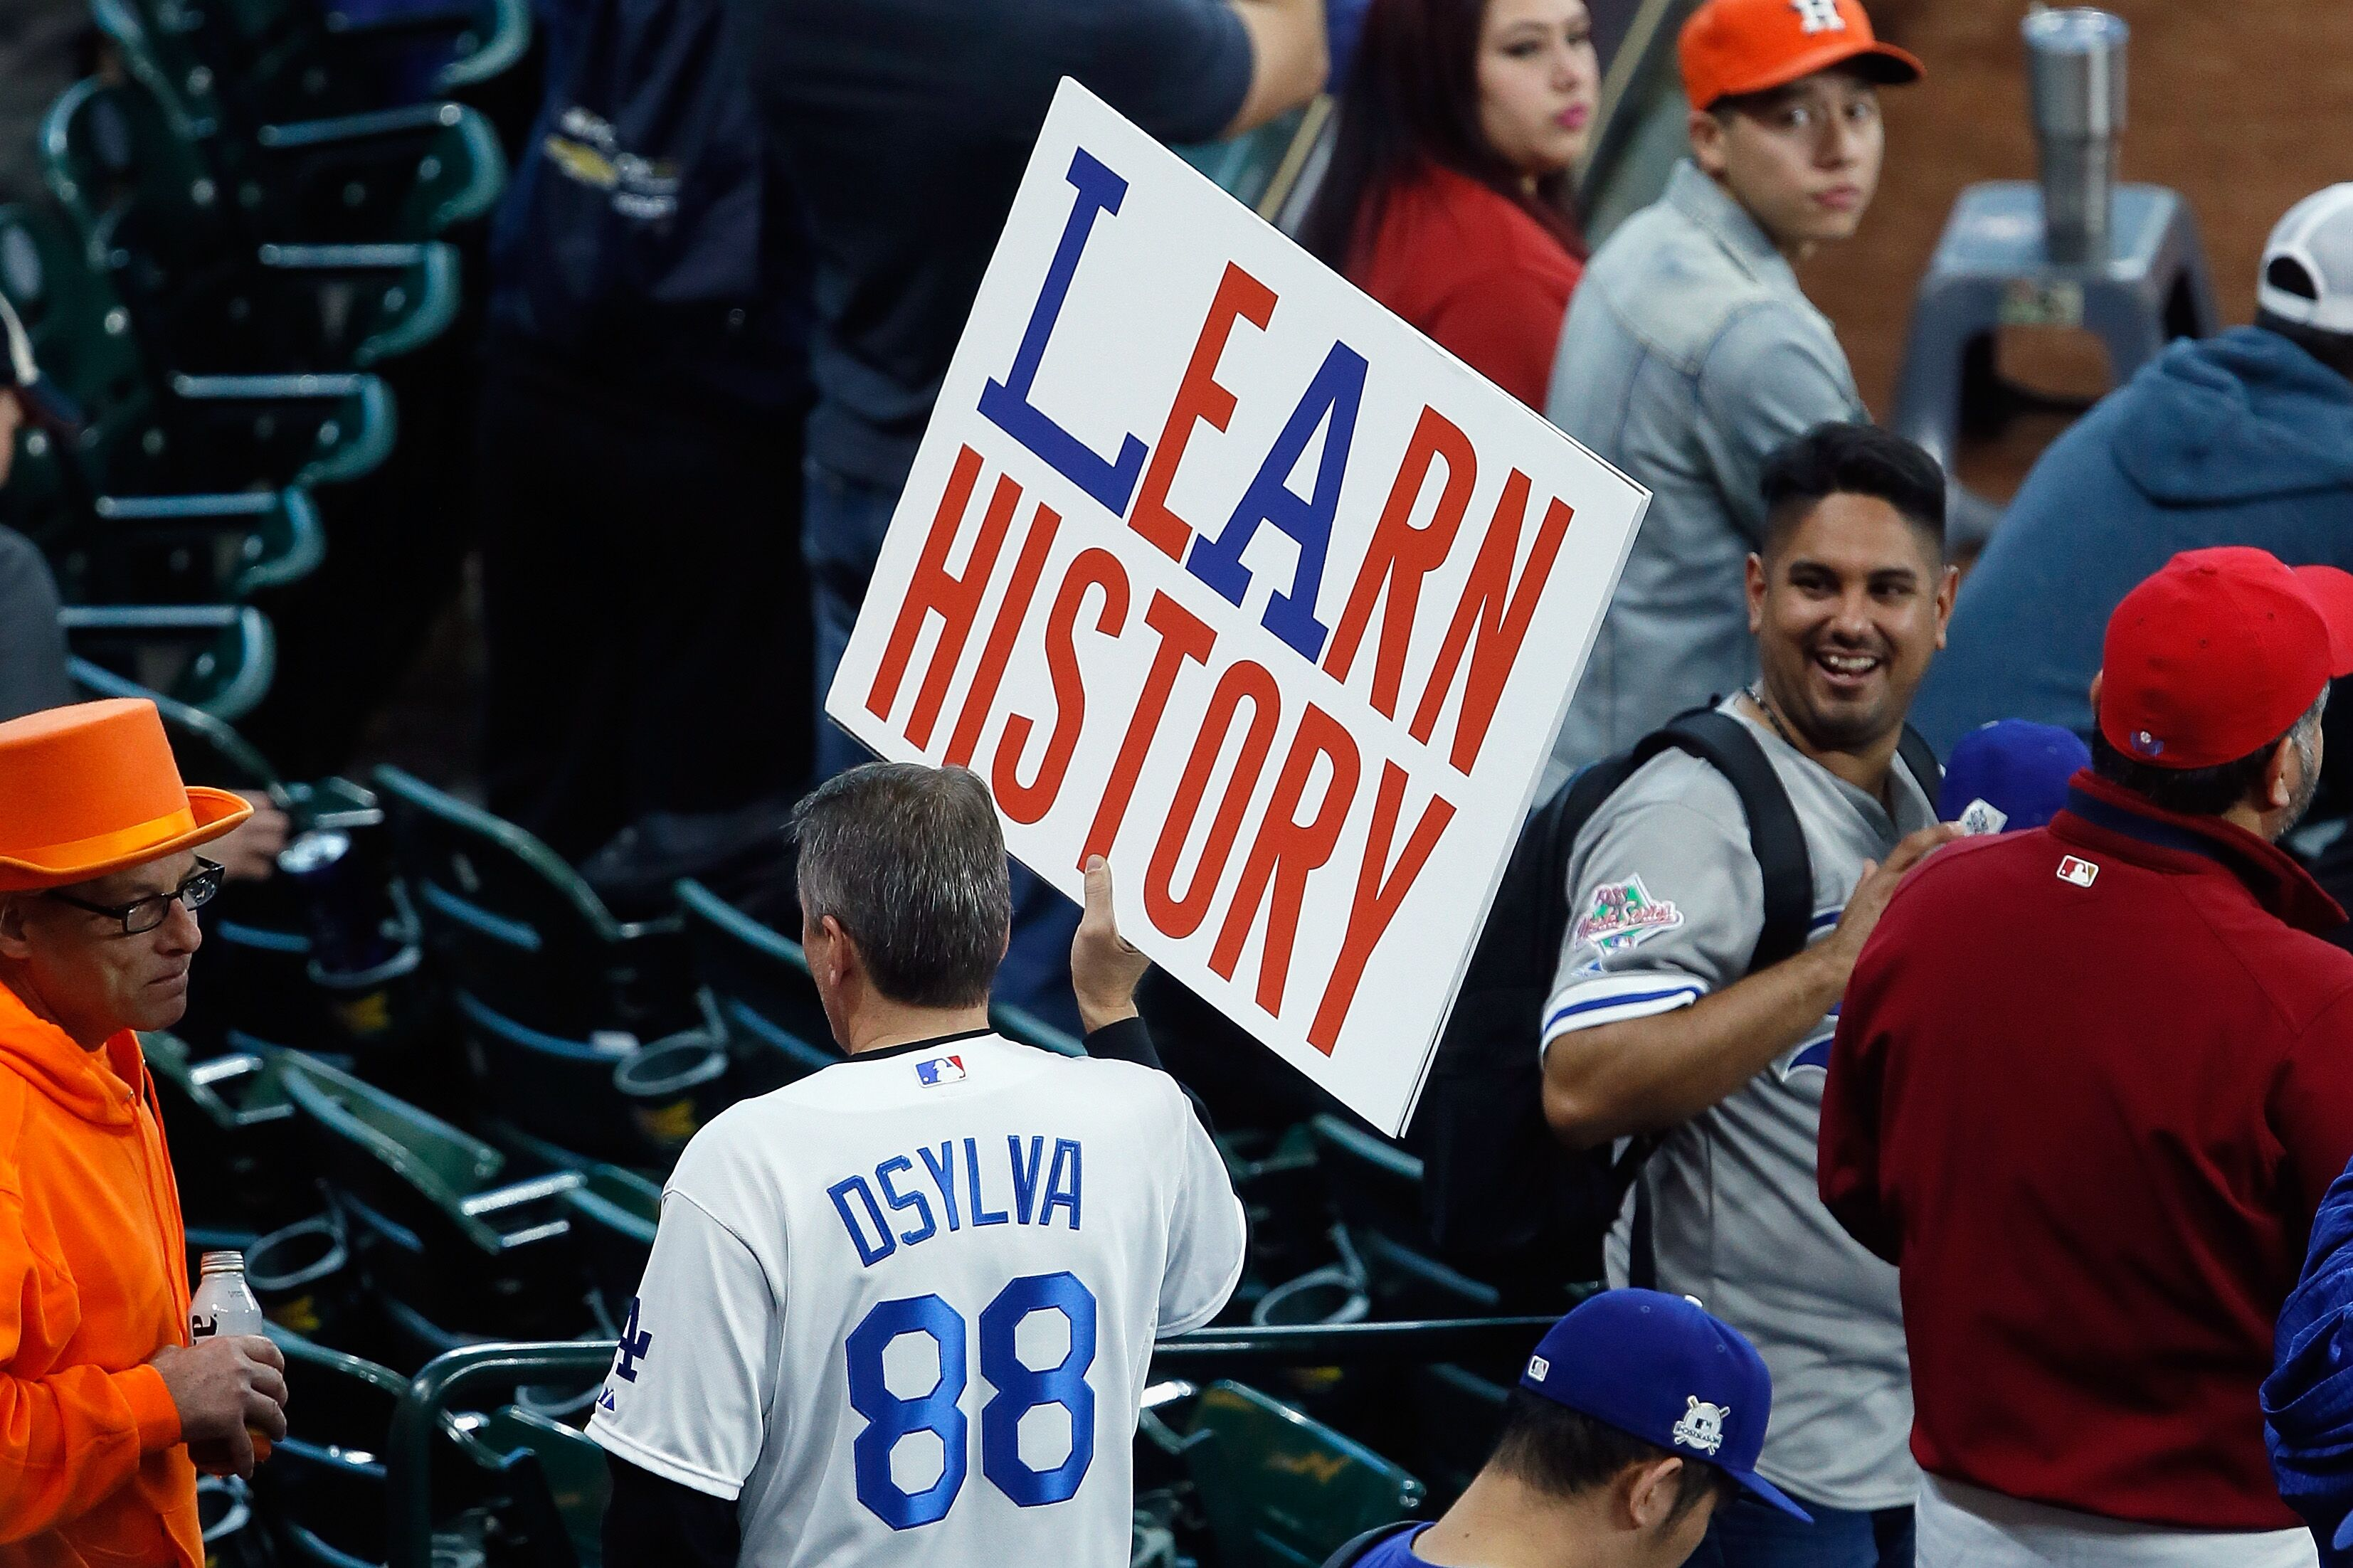 867954110-world-series-los-angeles-dodgers-v-houston-astros-game-five.jpg